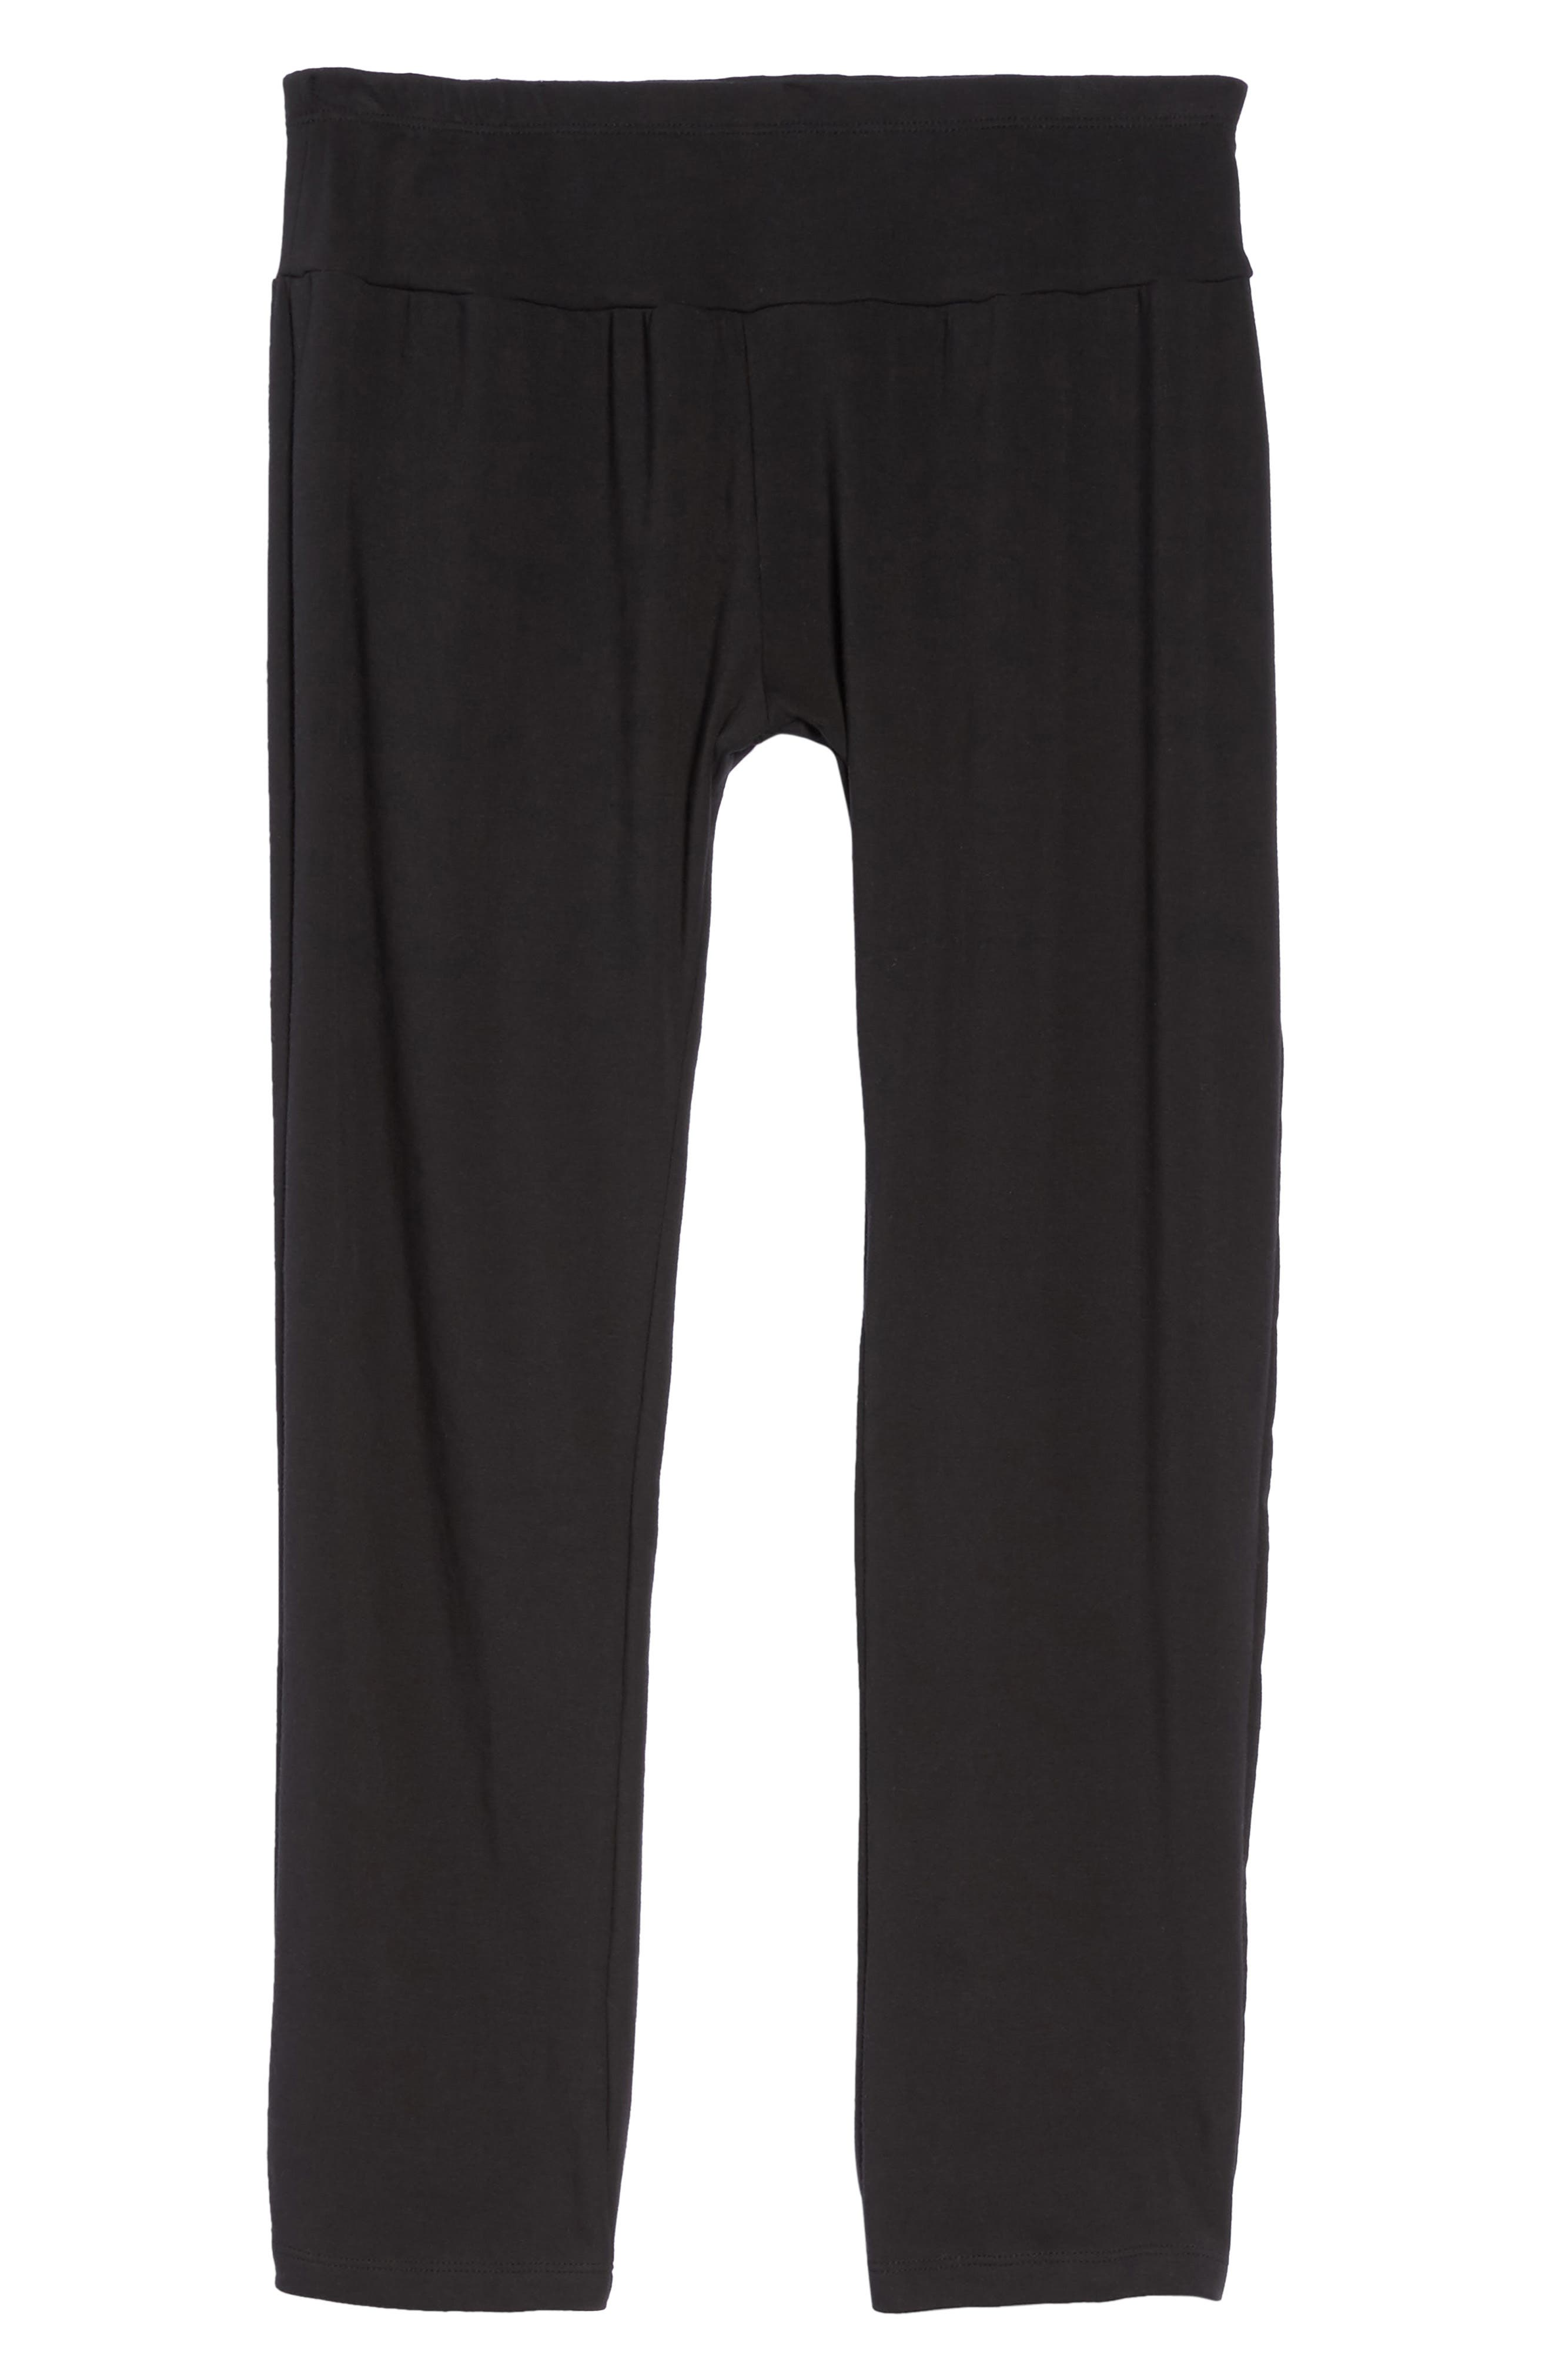 New Mama Relaxed Fit Pants,                             Alternate thumbnail 6, color,                             001